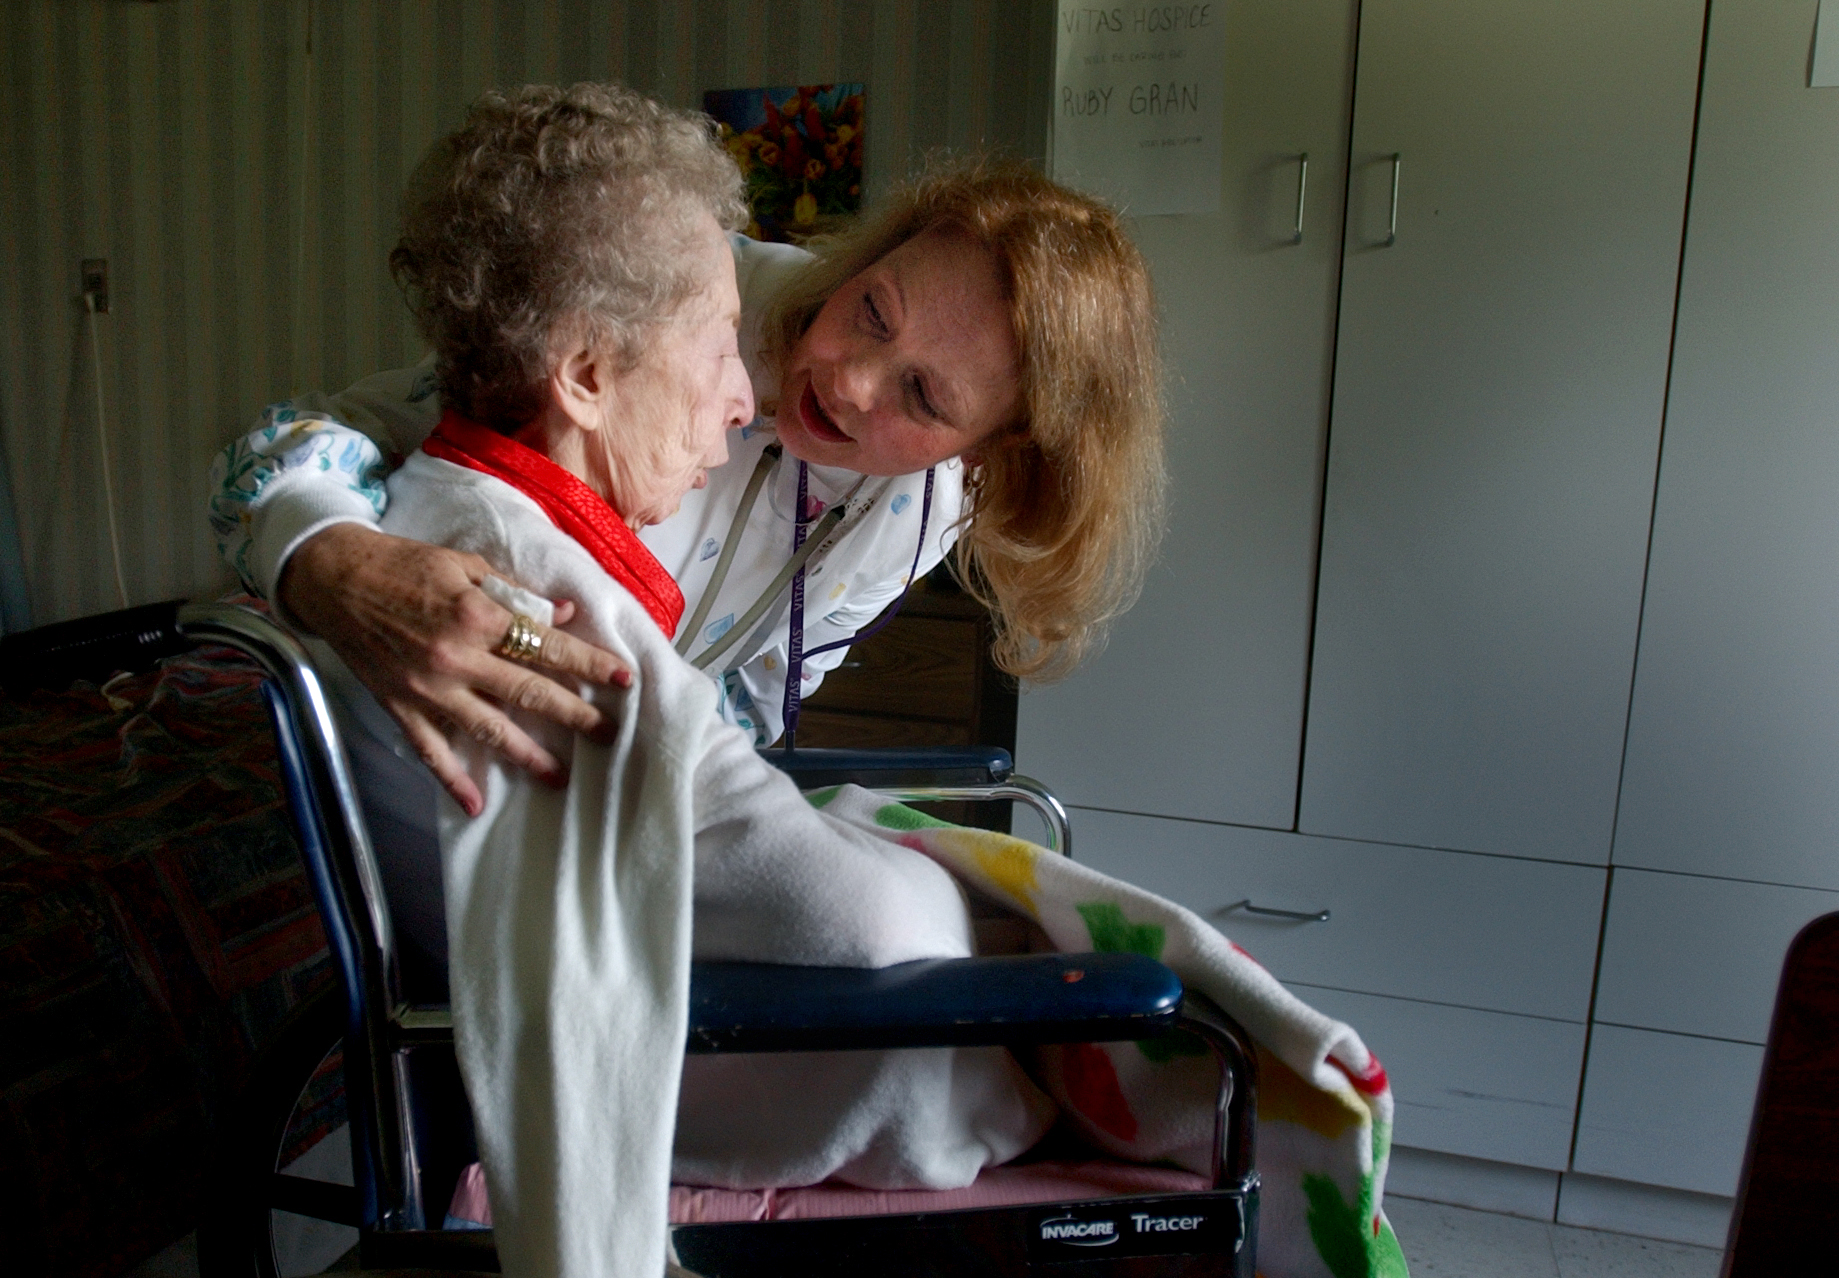 ROBERT SUMNER / HERALD NEWS STAFF PHOTOGRAPHER Hospice patient Ruby Gran gets a hug from her hospice nurse Donna Lyle at Rosewood Care Center in Joliet. Lyle works for Vitas Healthcare Corporation, which provides the hospice Service. 042105